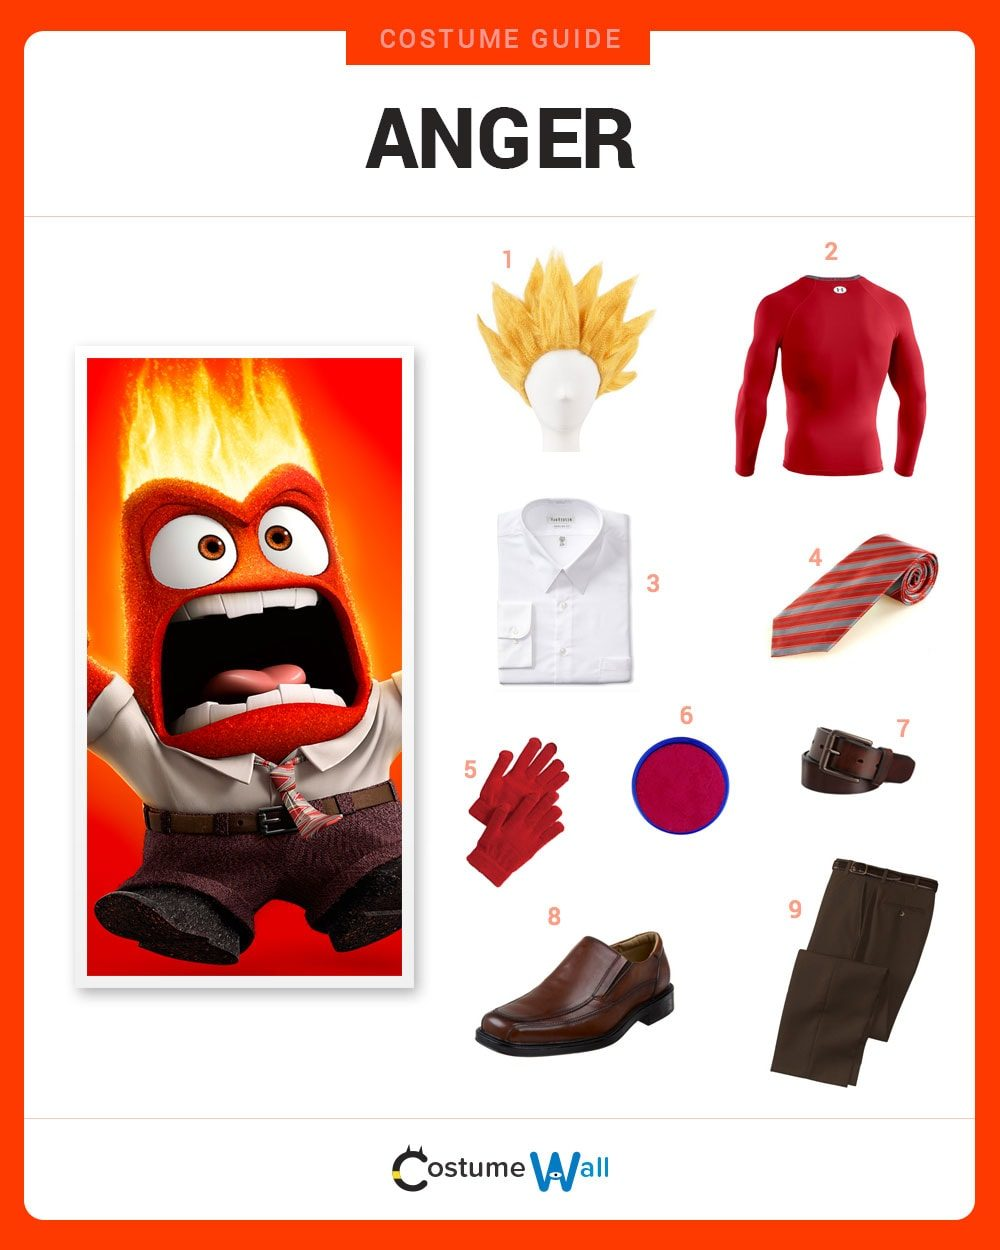 Anger Costume Guide